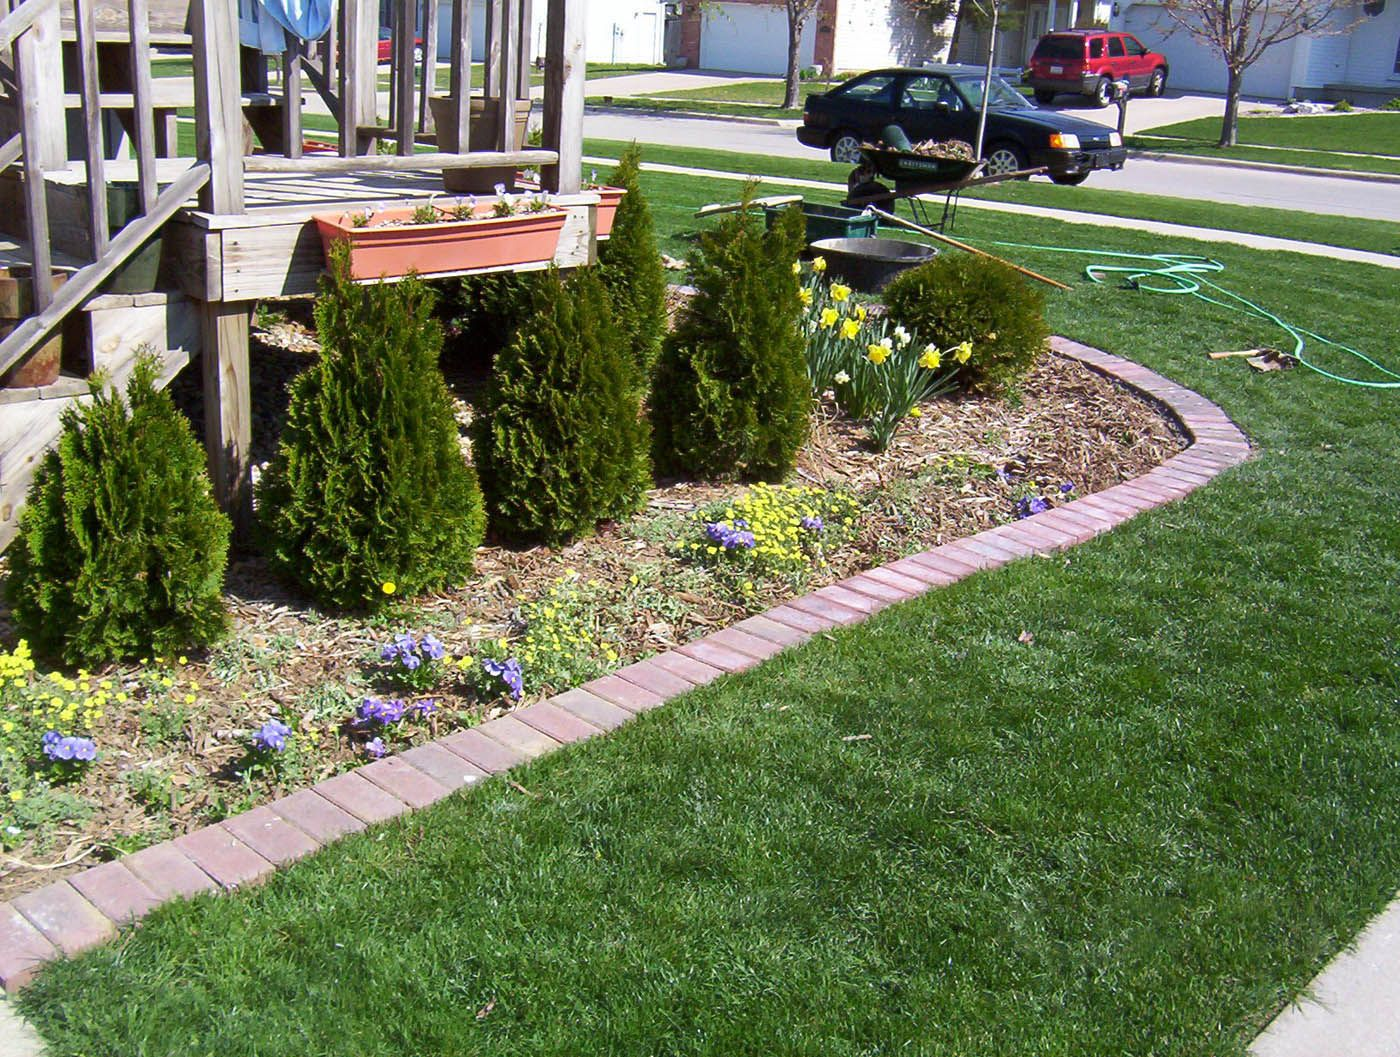 Simple flower bed edging design ideas lawn care for Garden trim